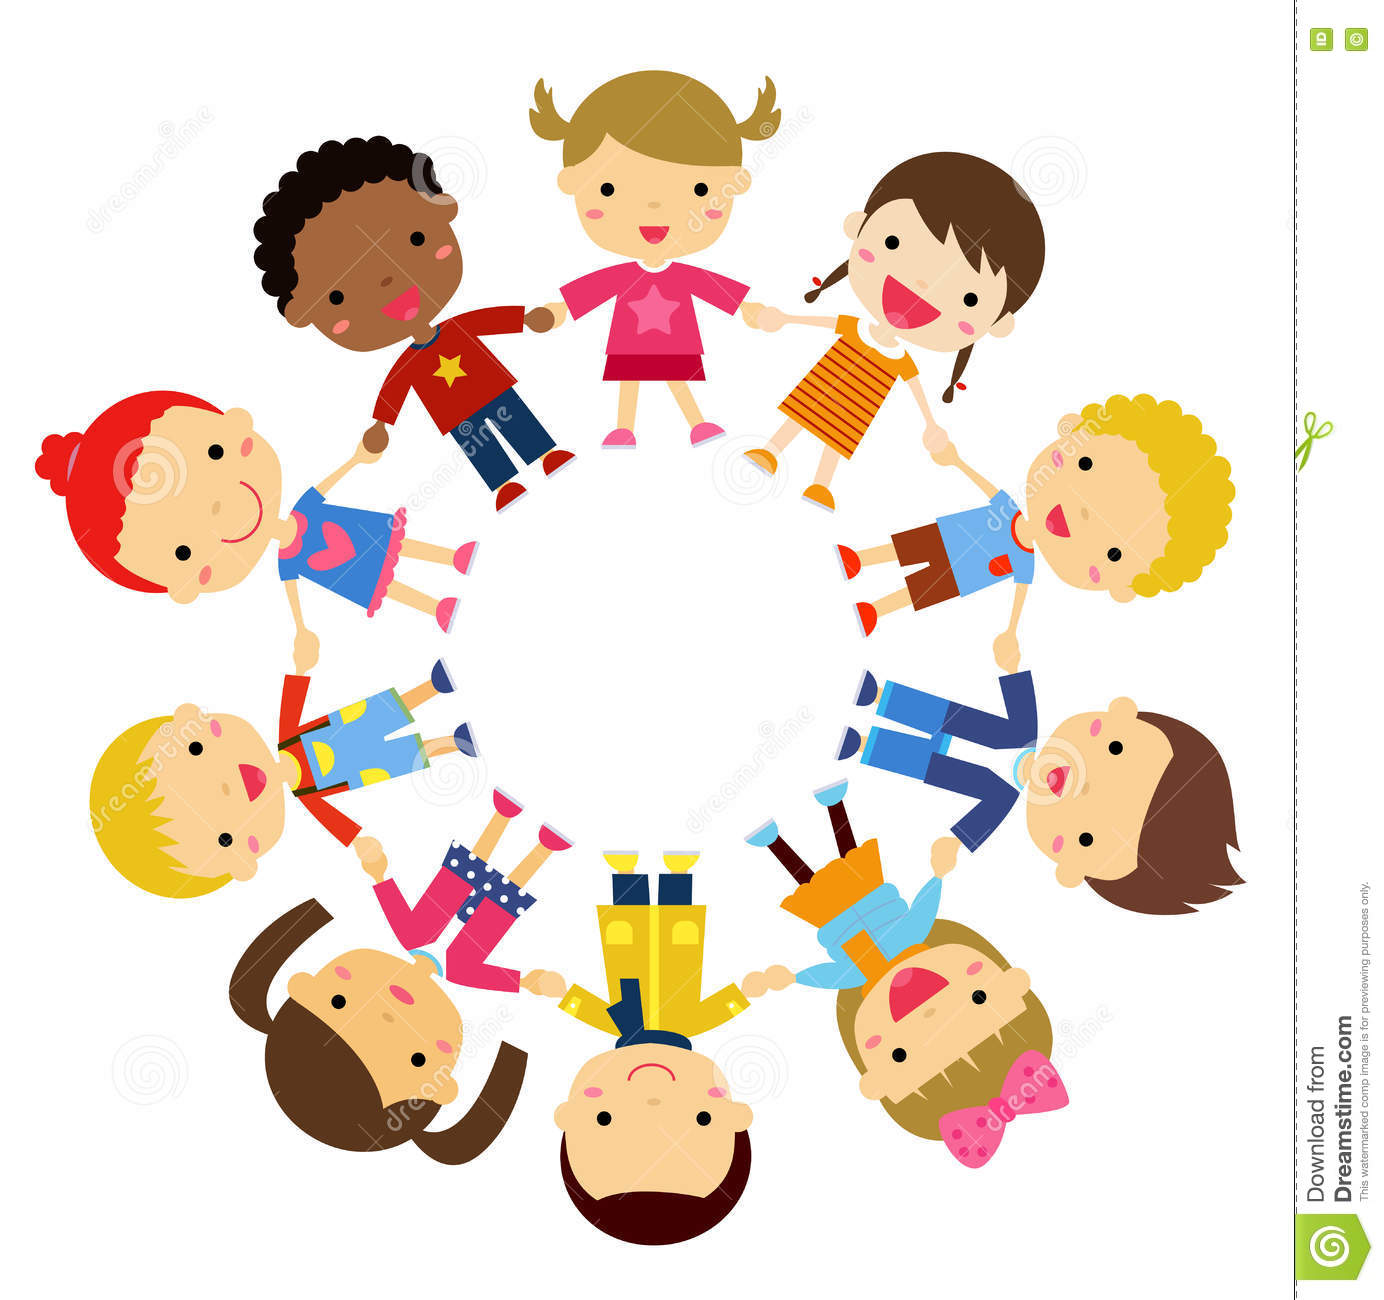 Children Friends From Around The World Of Various Ethnic Groups In.